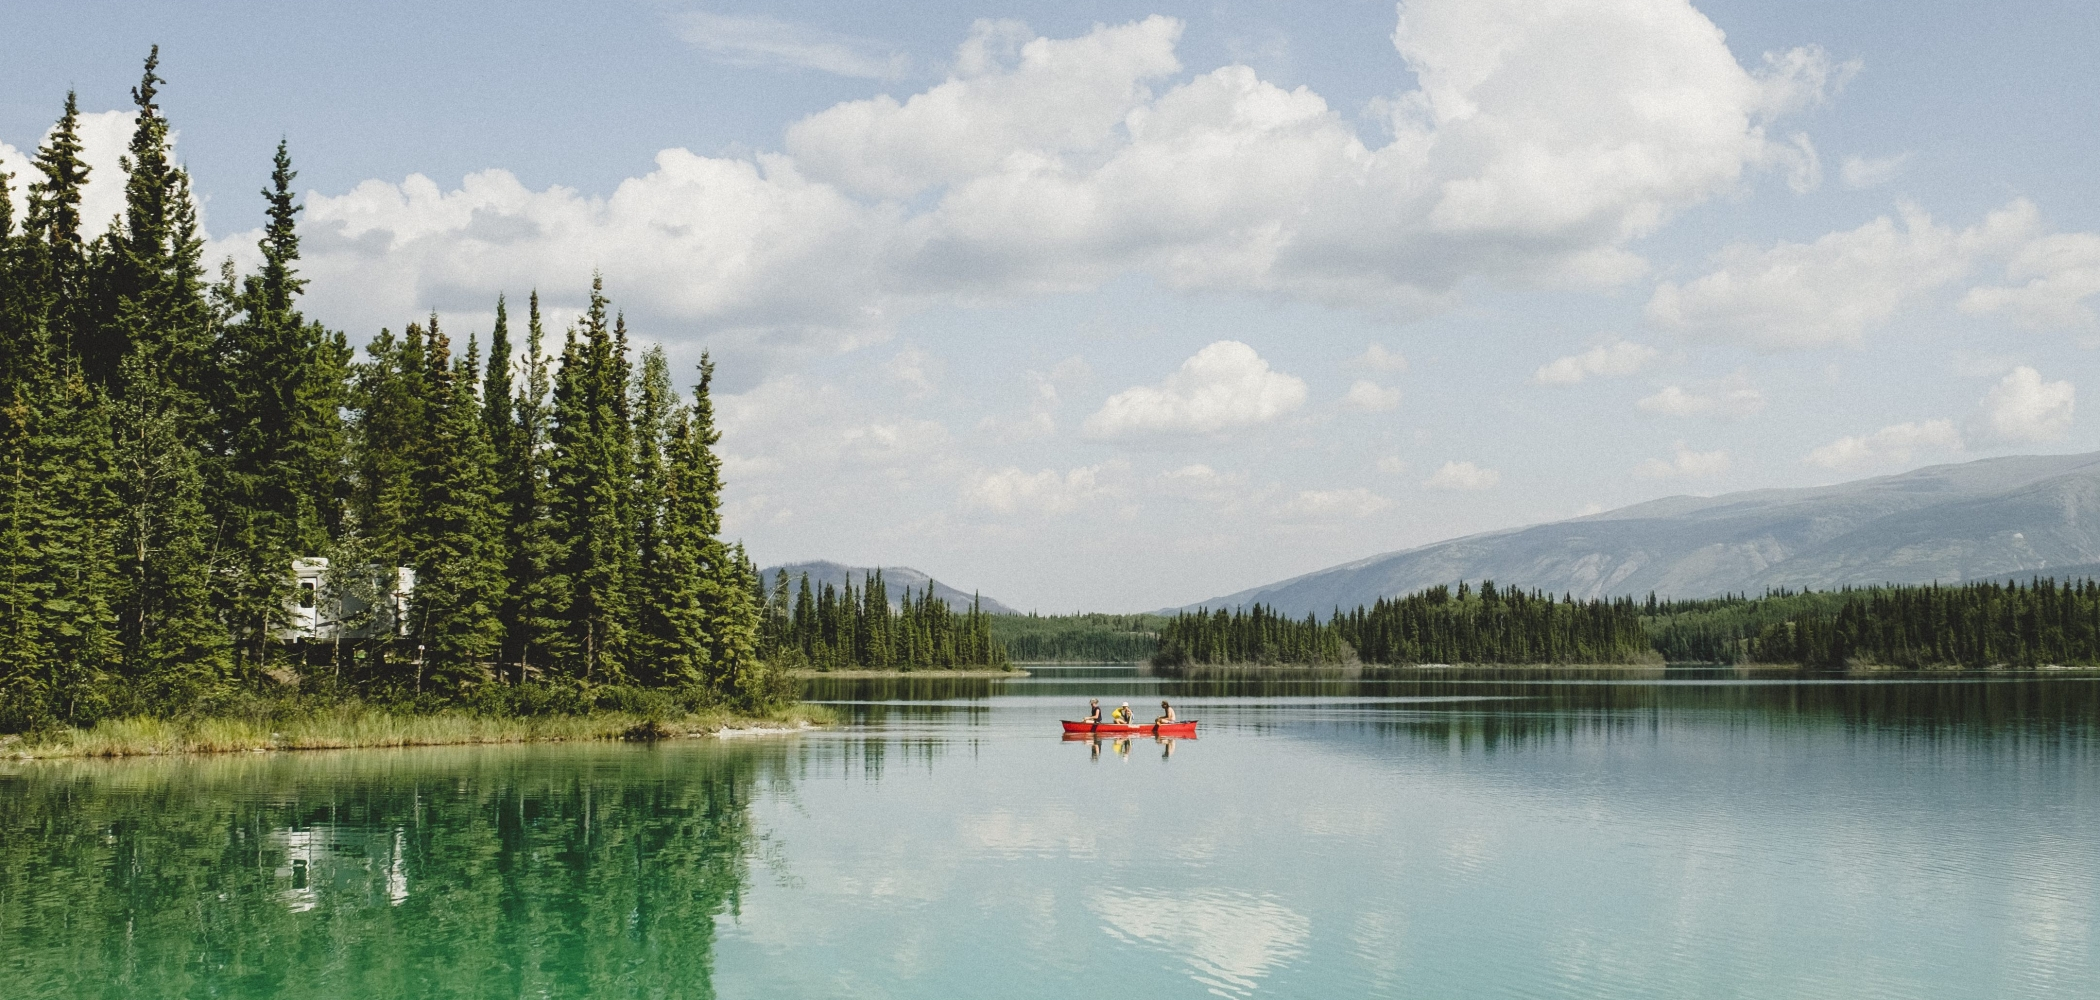 Two people canoeing on a lake in British Columbia